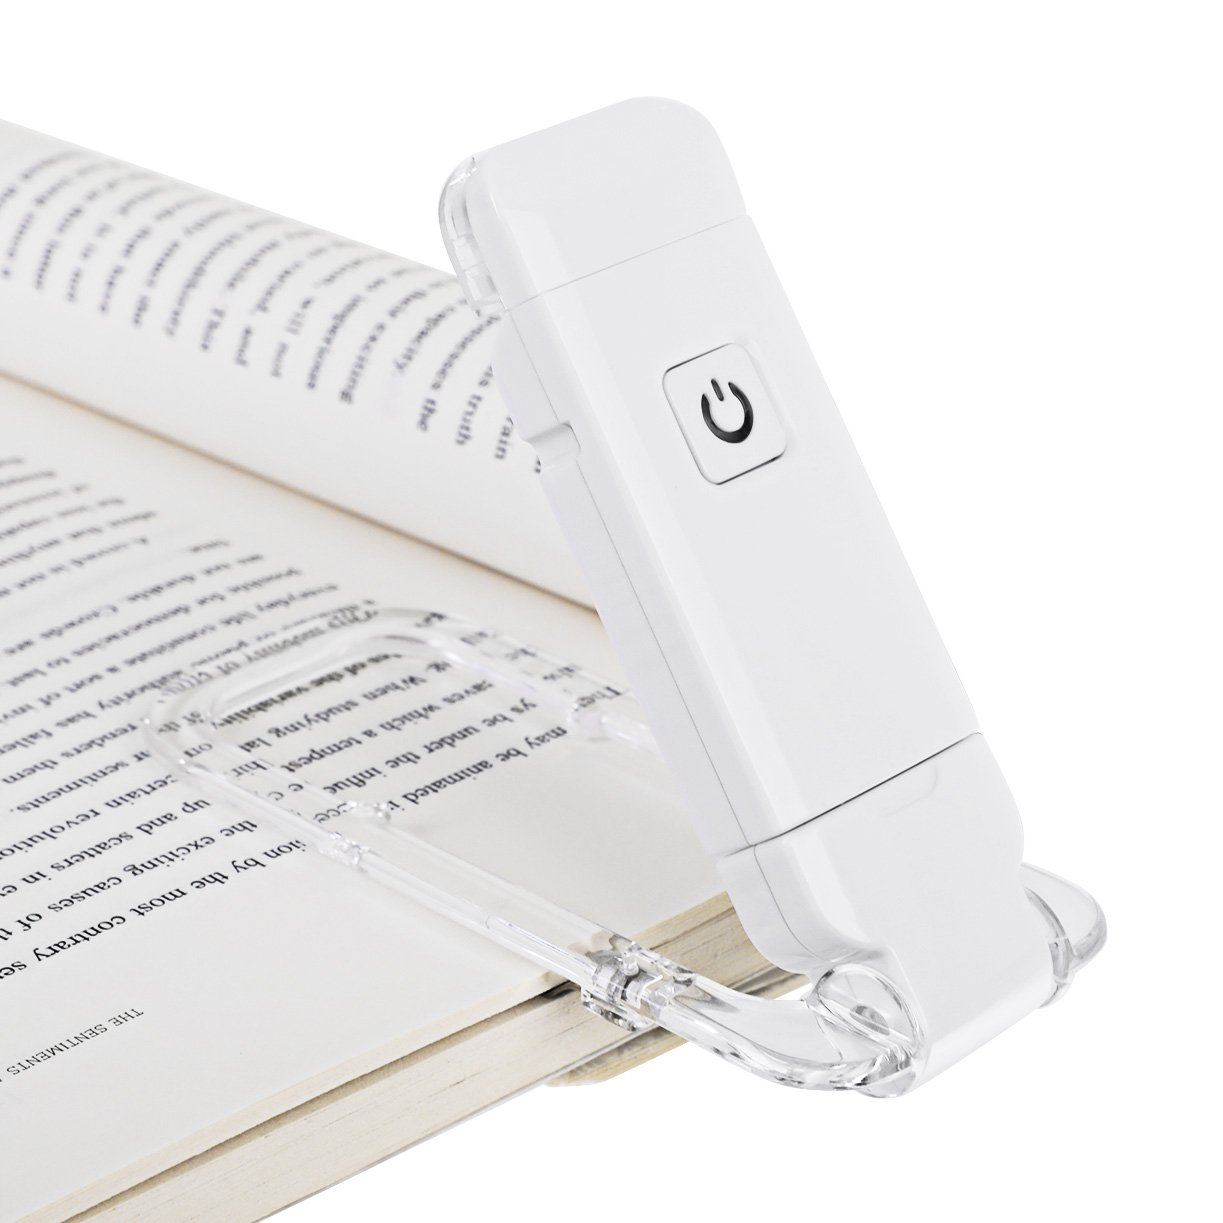 DEWENWILS USB Rechargeable Book Reading Light, LED Clip on Book Lights, Brightness Adjustable for Eye-Protection, Portable, Warm White, Bookmark for Reading in Bed LED Book Light